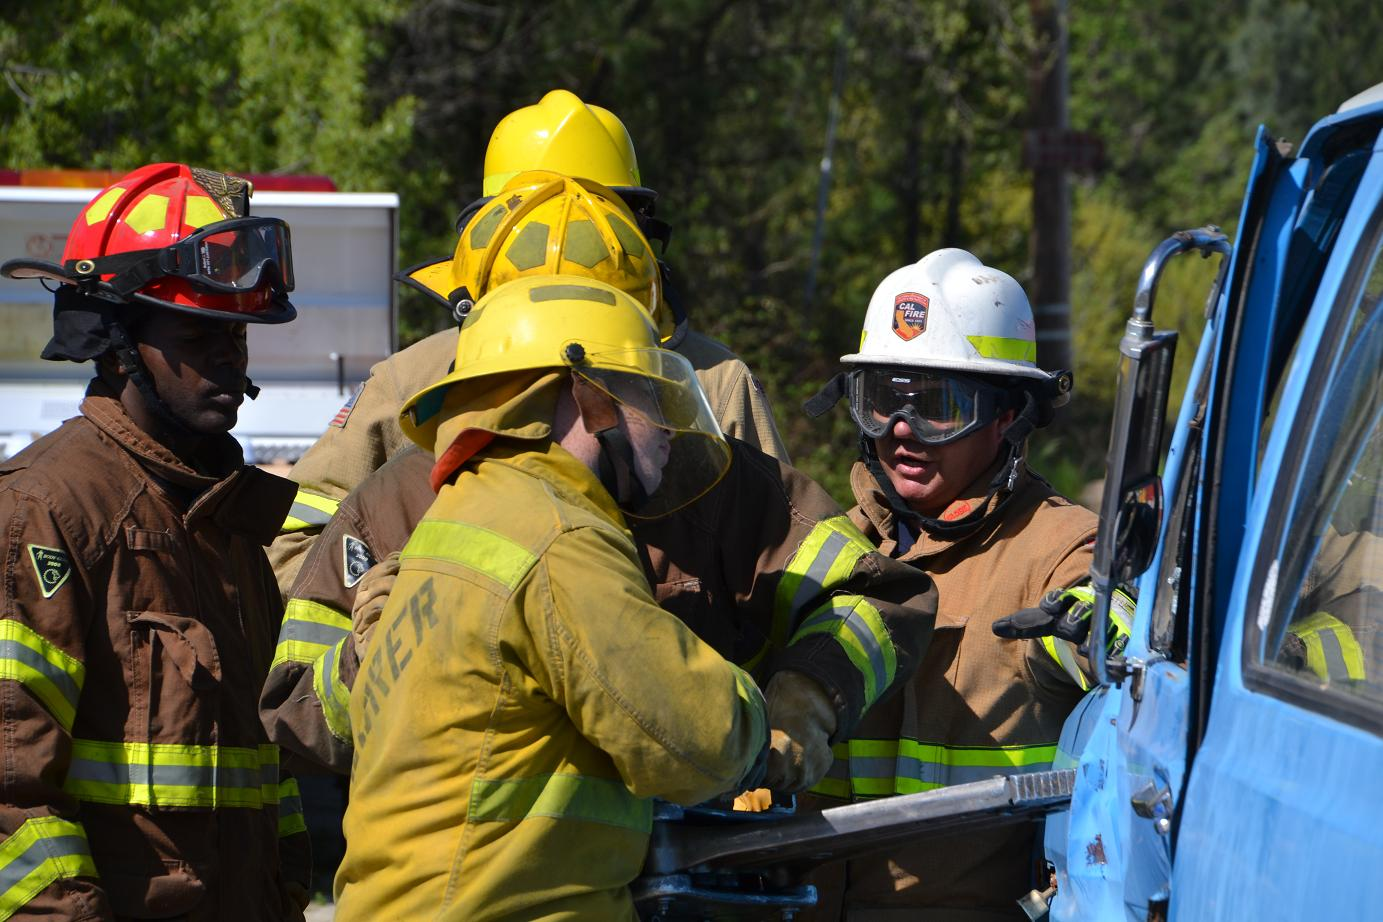 Battalion Chief Chris Christophers instructs on Jaws of Life - photo by Gina Clugston